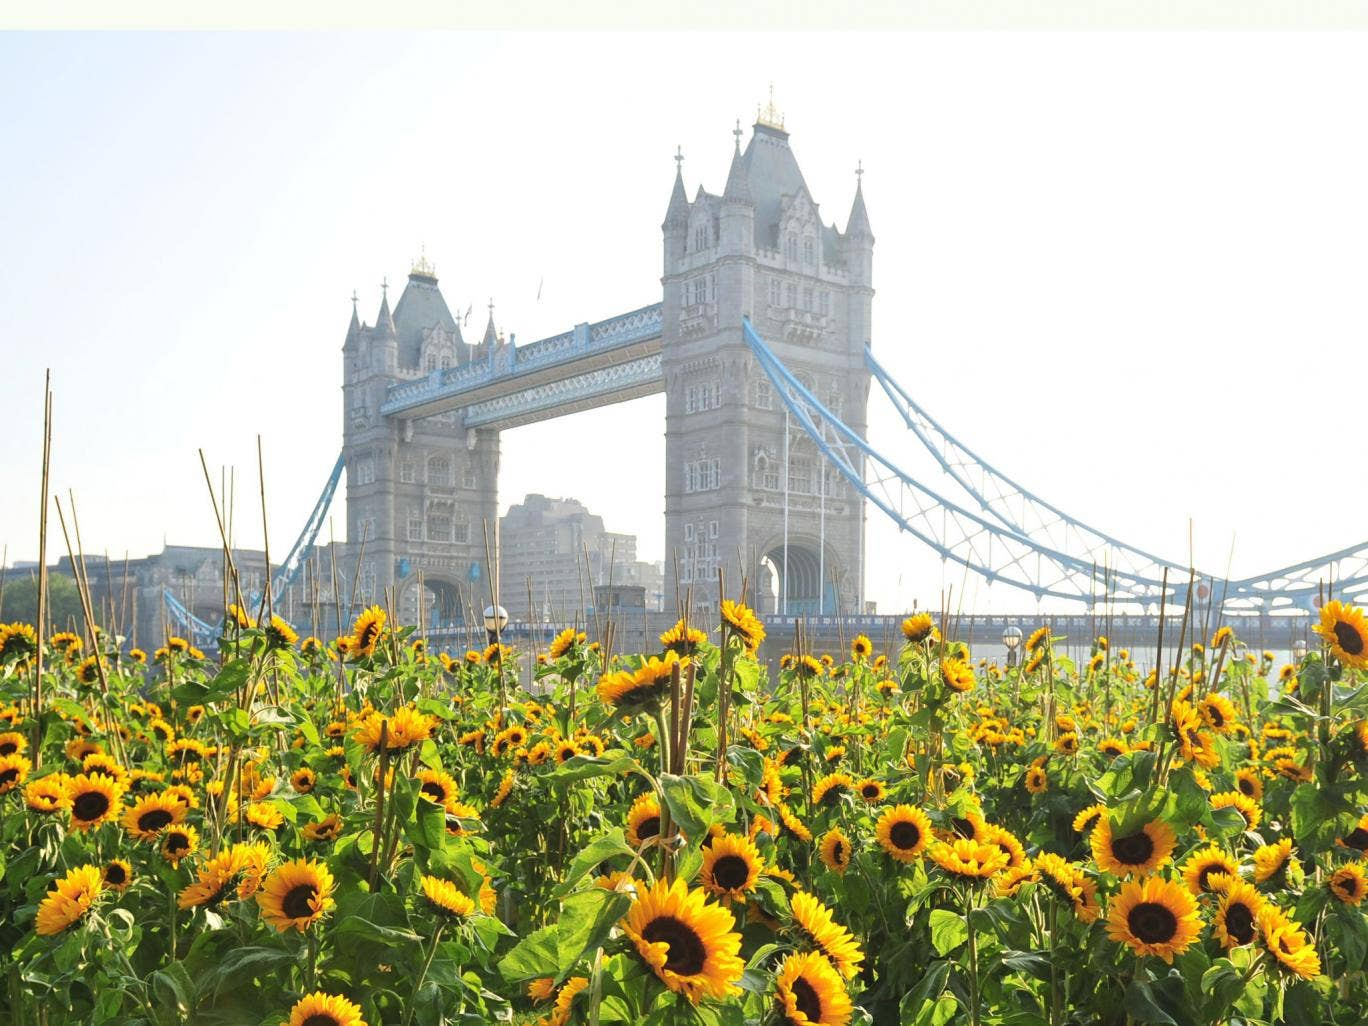 Flora celebrated the return of their iconic sunflower logo with a surprise field of sunflowers popping up at Potters Field Park